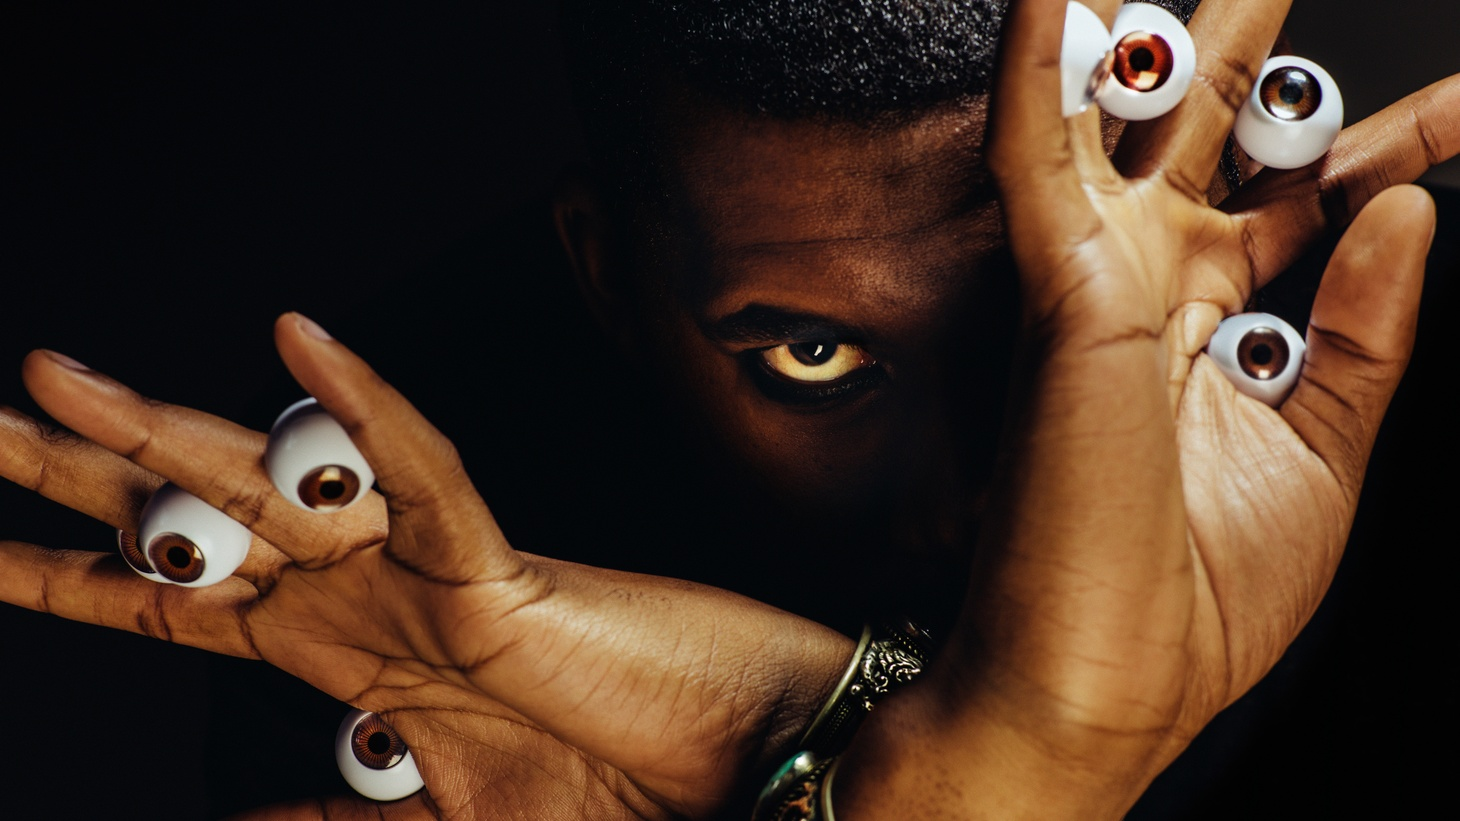 LA's own Flying Lotus has fearlessly explored new territory -- sonic and otherwise -- on each of his releases. His latest is the most conceptual yet as he digs into the idea of an infinite and unknown afterlife through a series of songs.